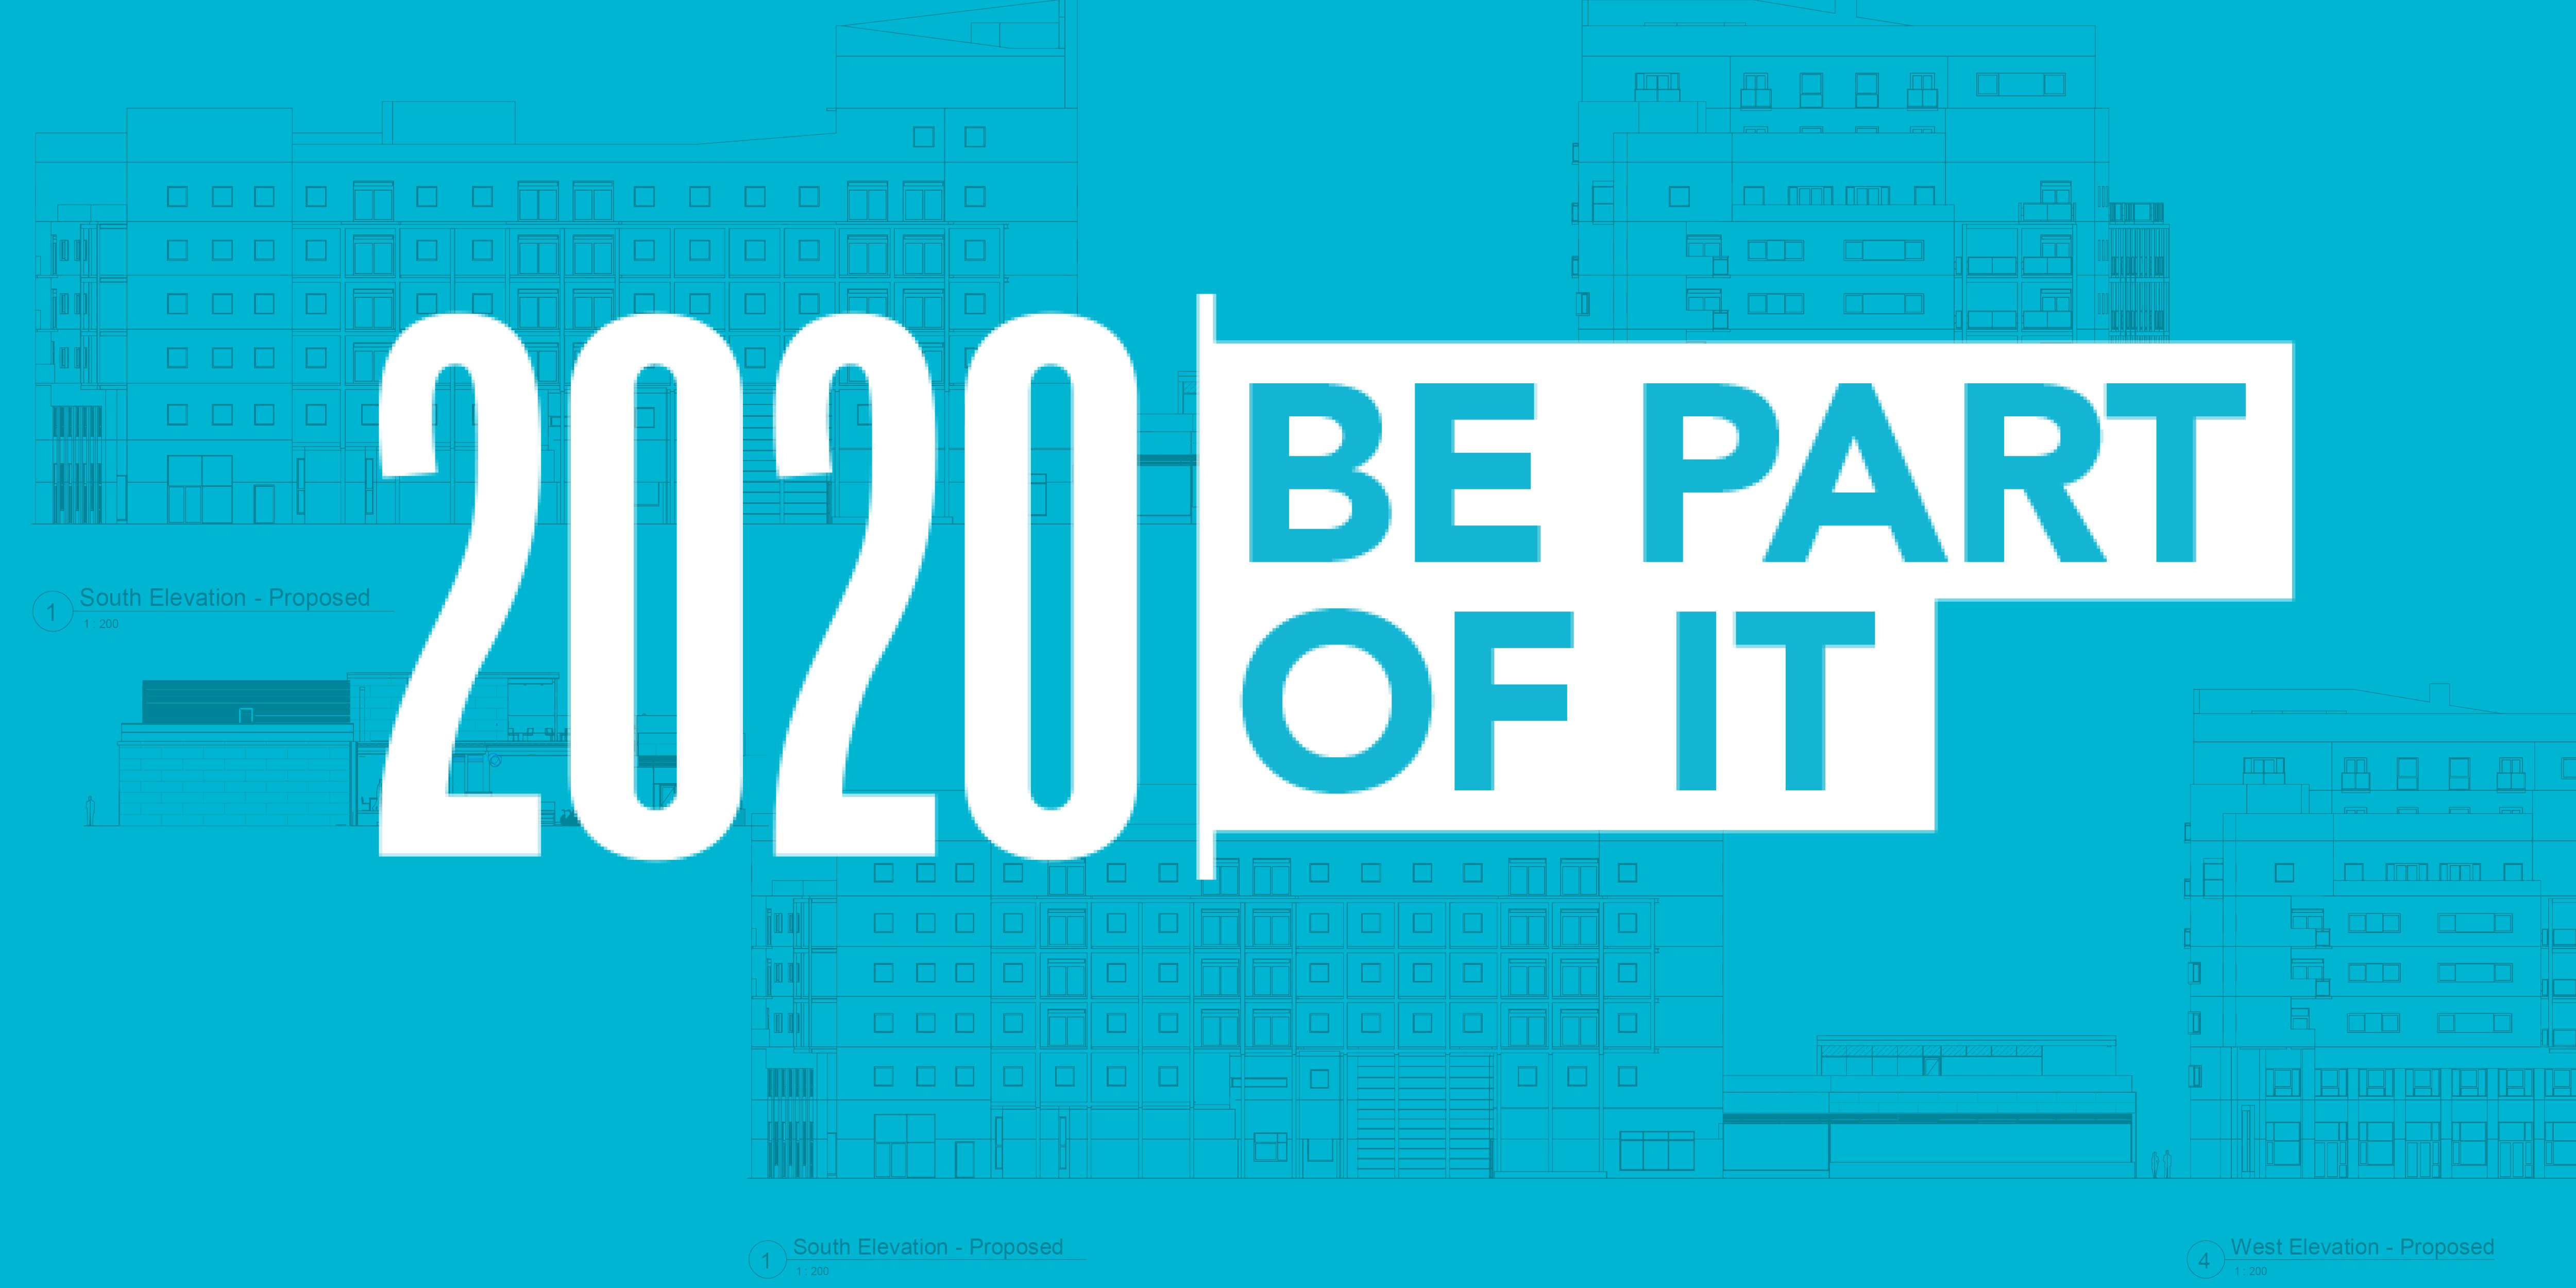 2020 Be part of it image